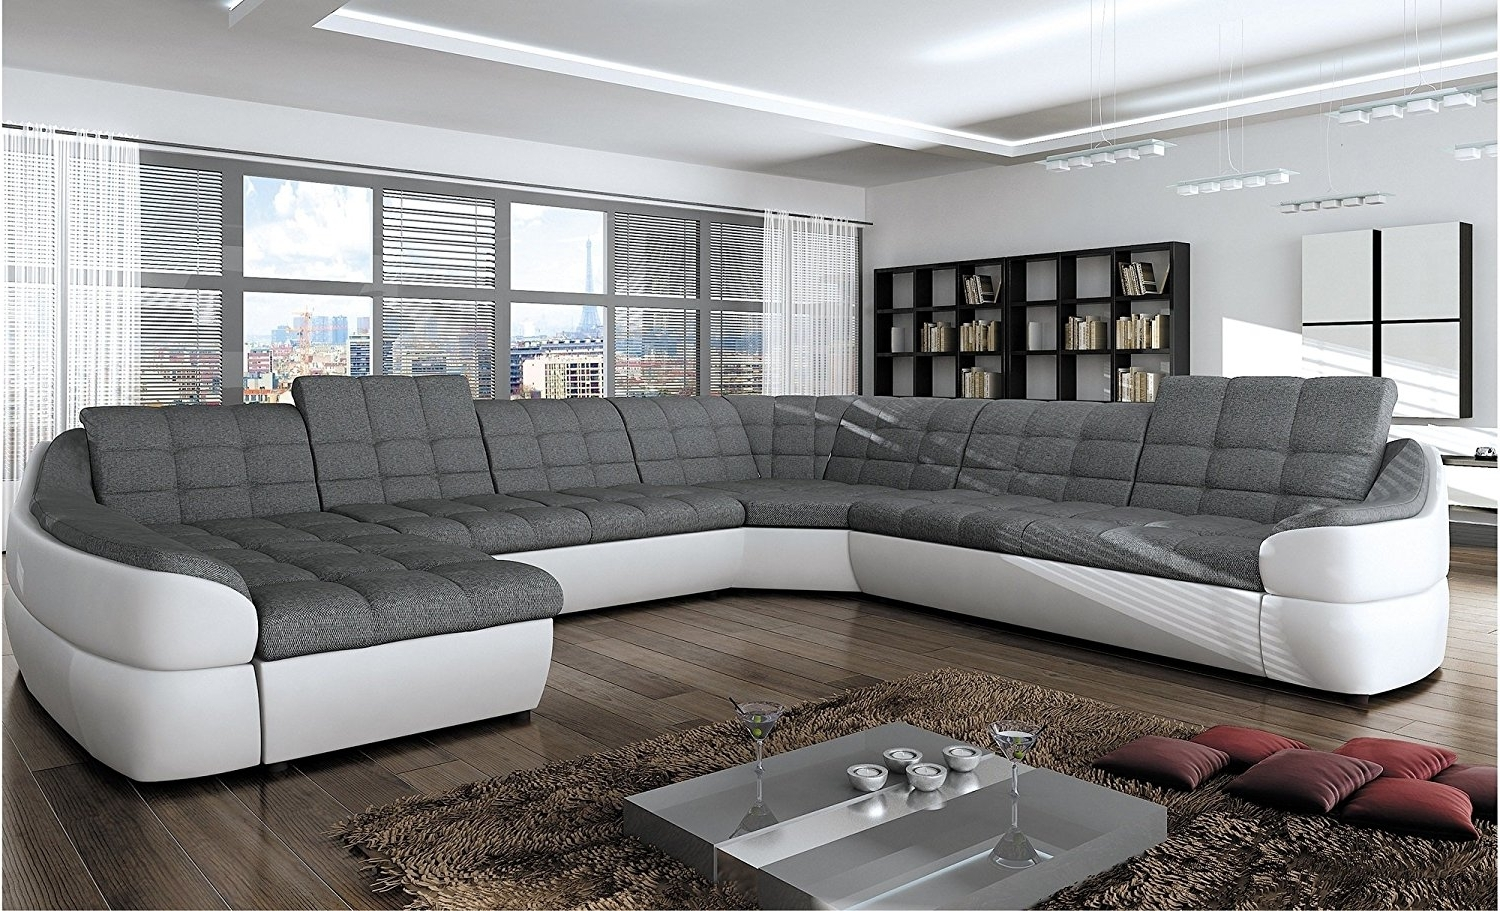 """Most Recently Released Fabric Corner Sofas Intended For Bmf """"infinity Xl"""" White Grey 6 Seater Extra Large Faux Leather (View 15 of 15)"""